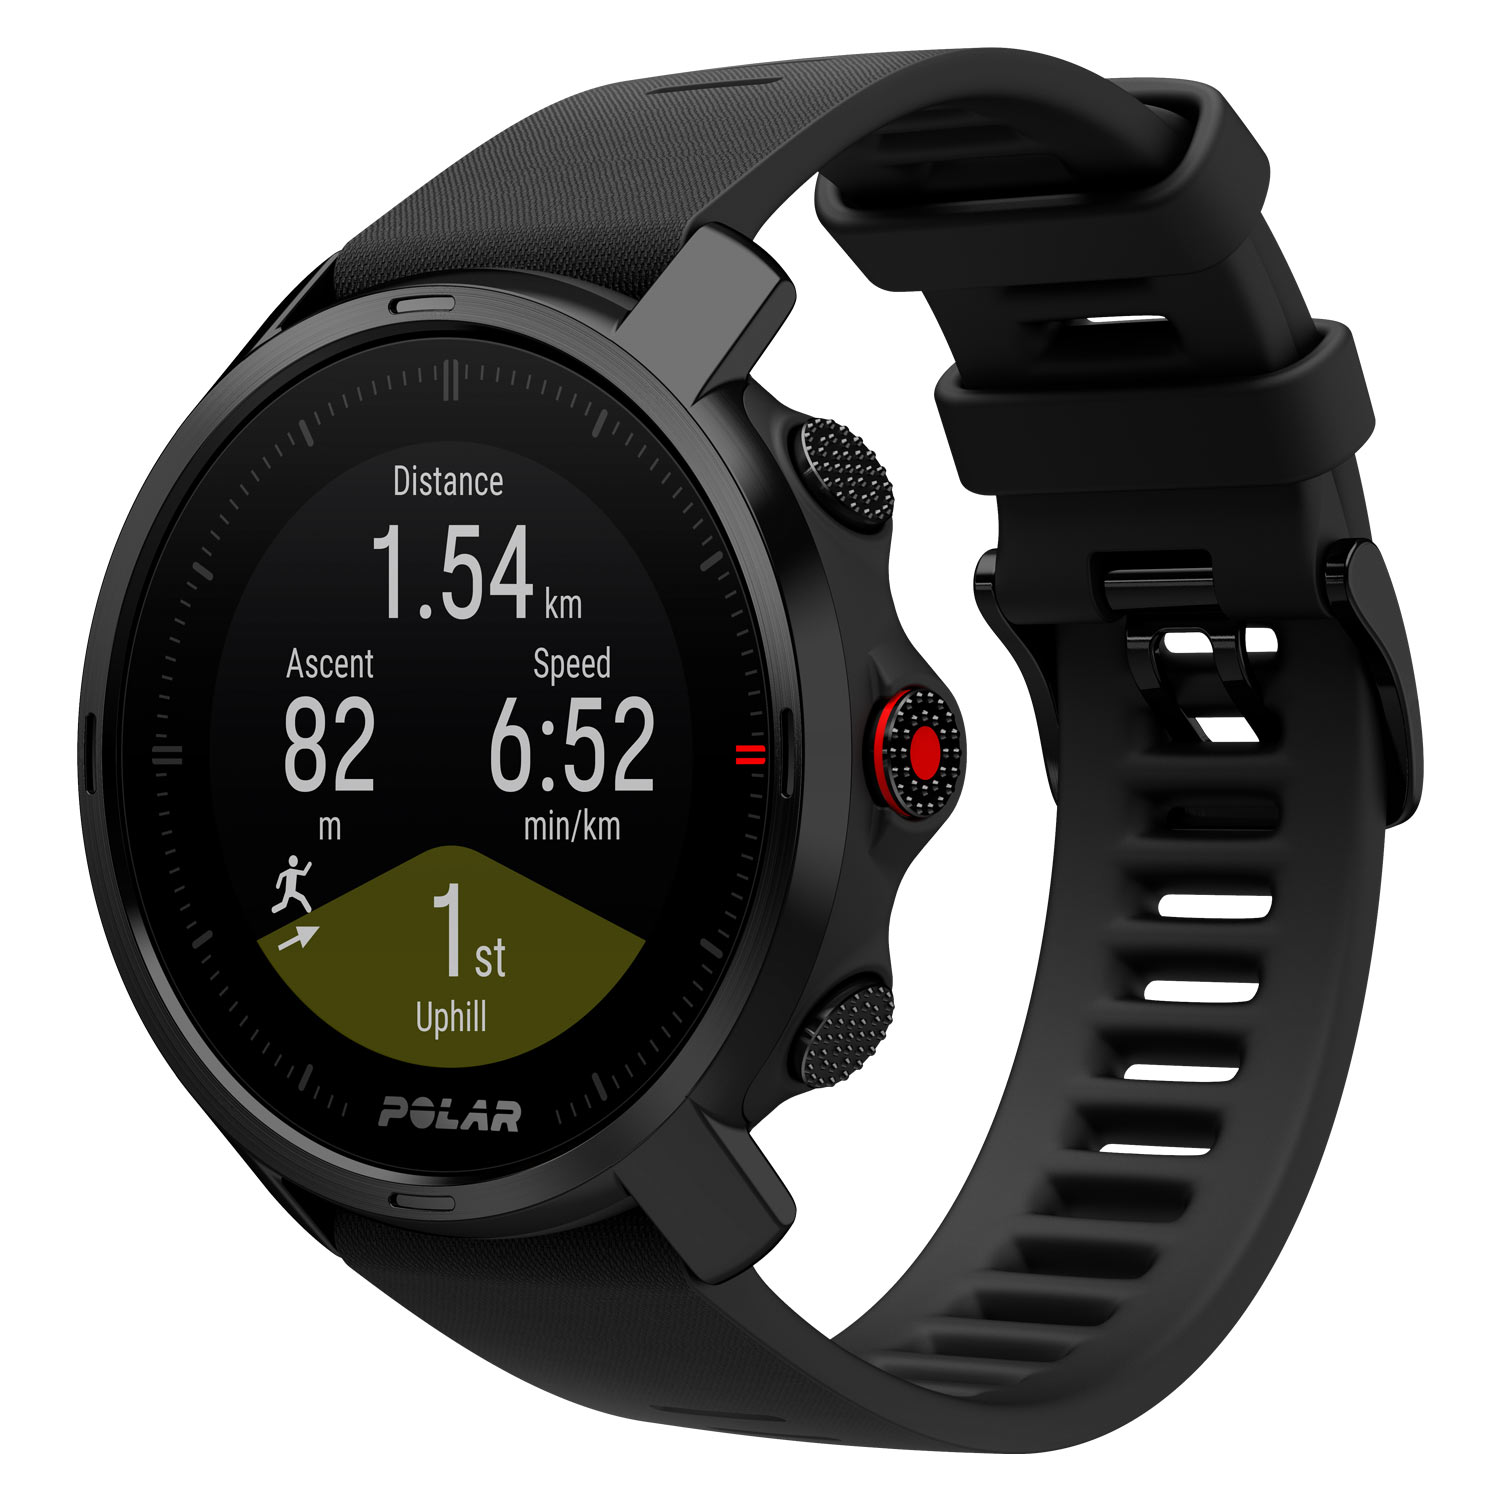 Polar Grit X | Outdoor watch with GPS, compass and altimeter | Polar USA